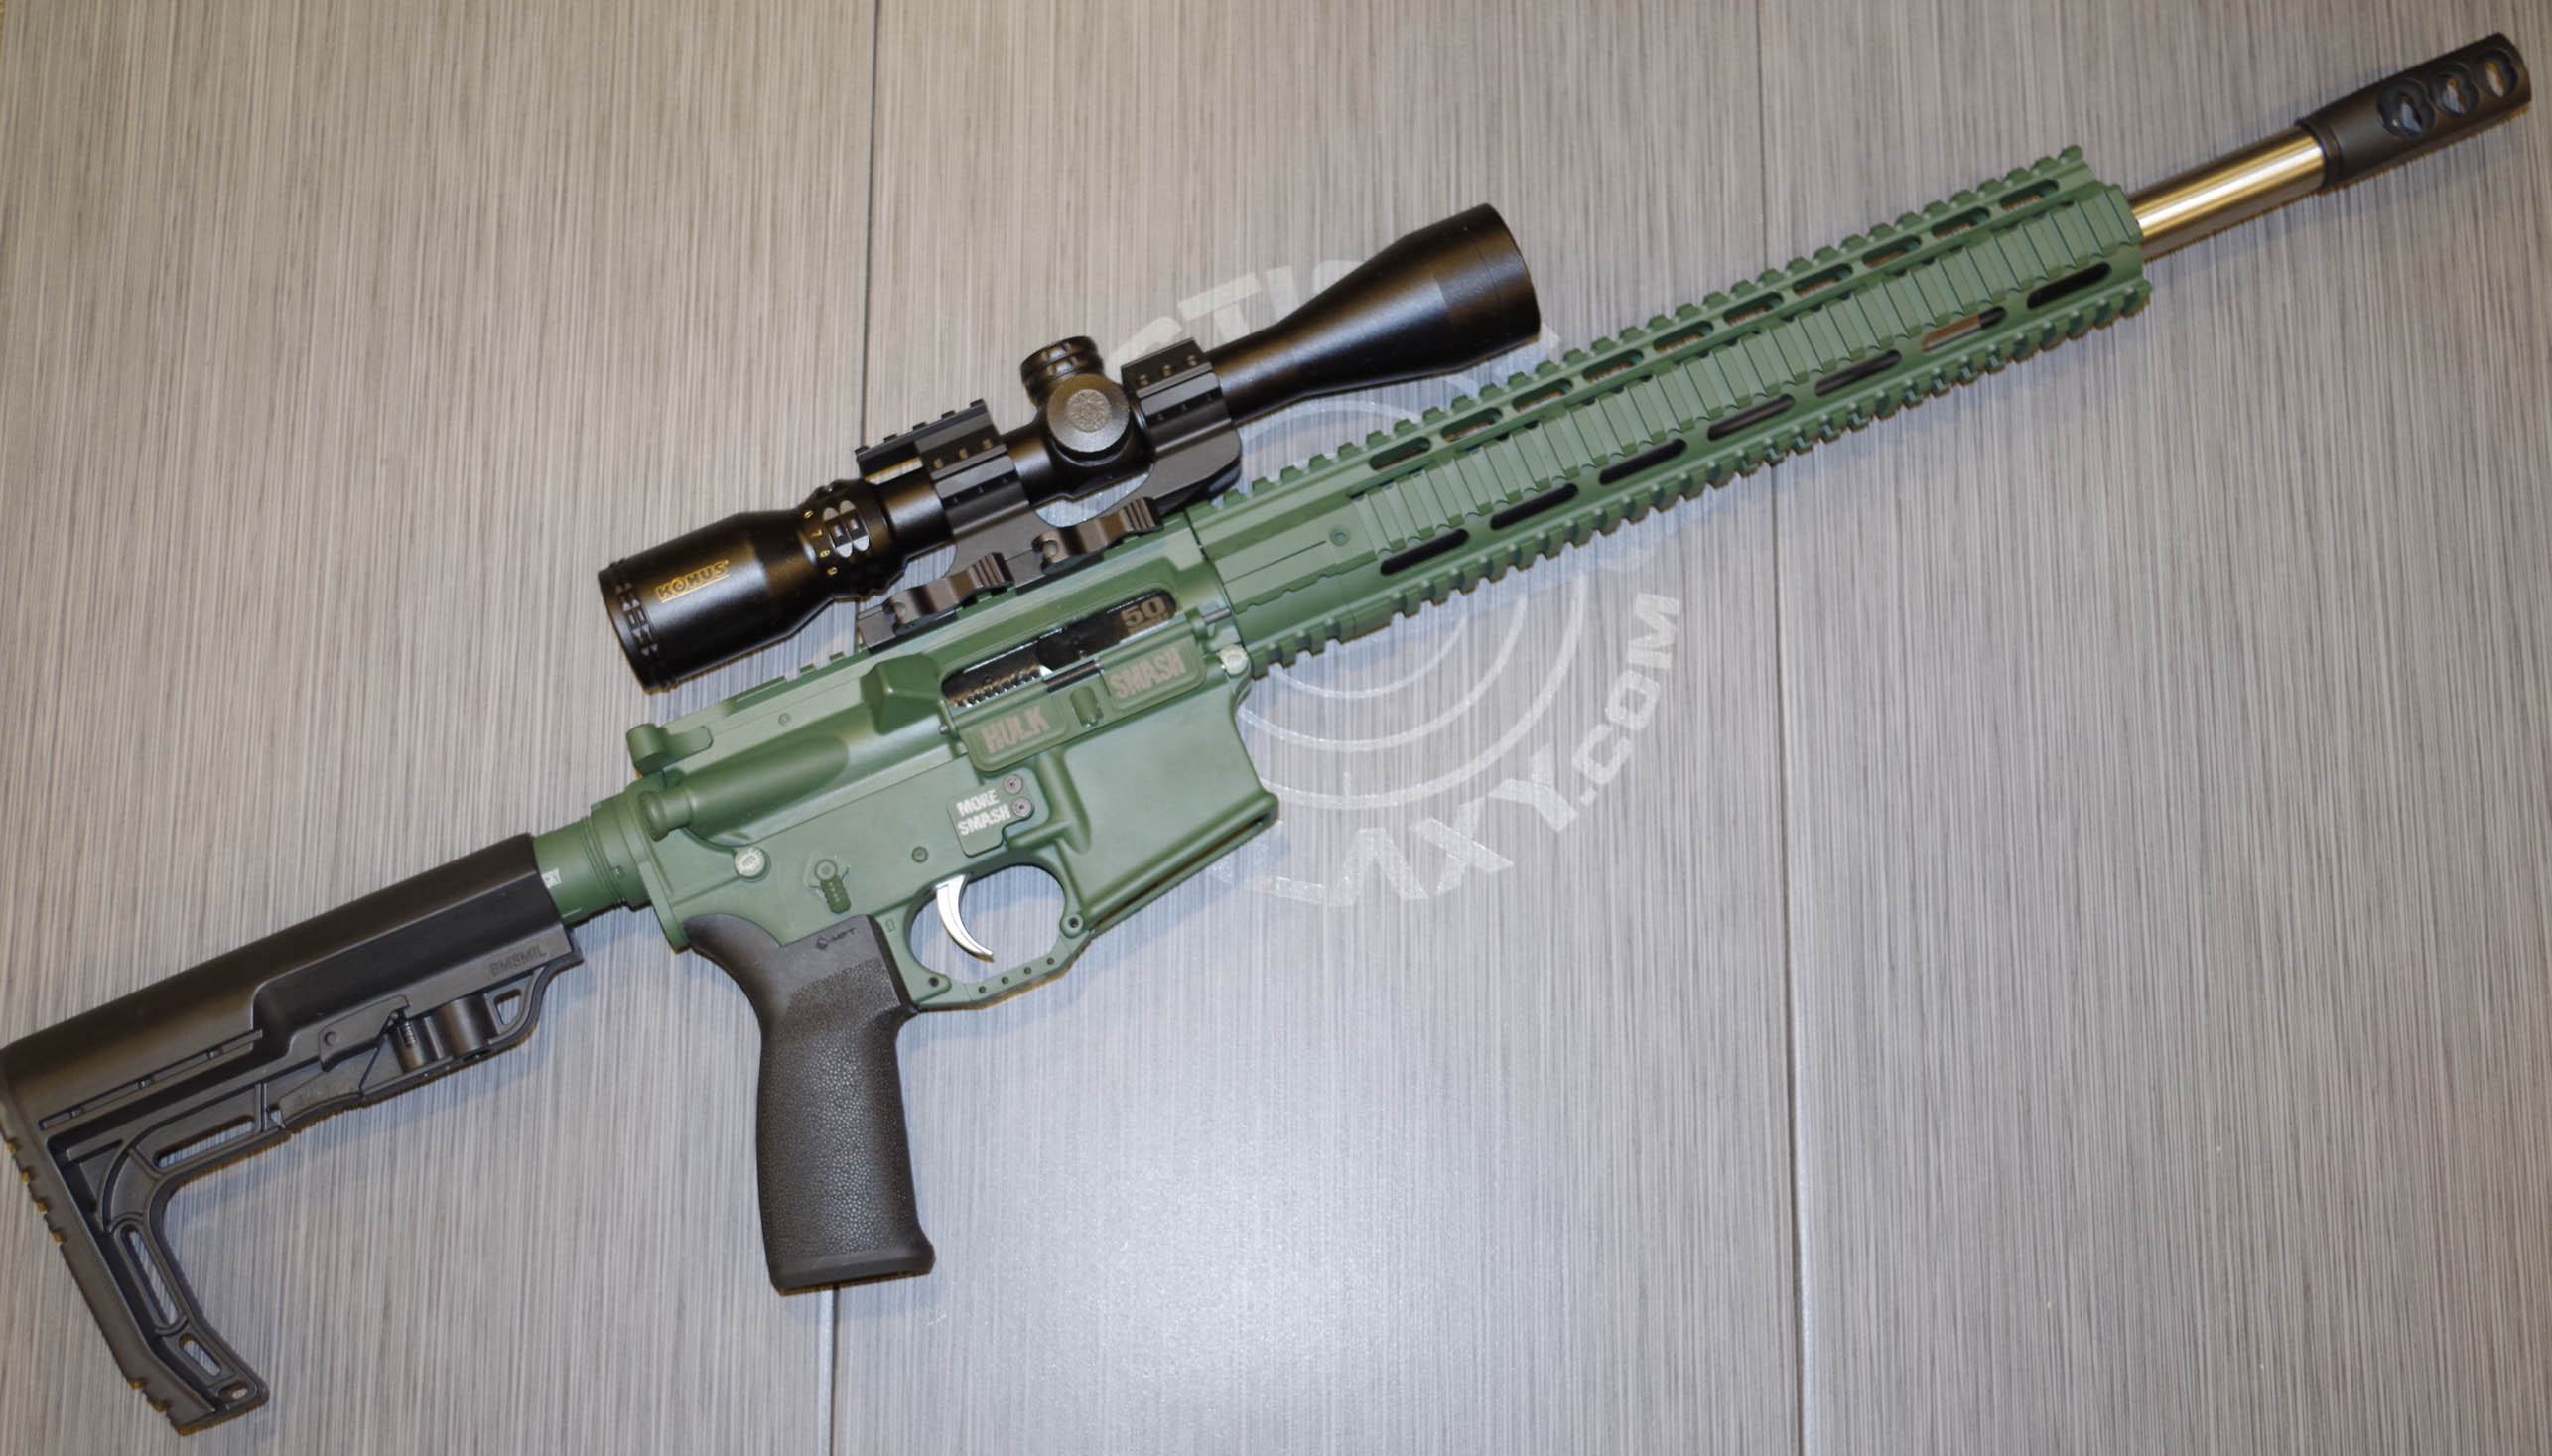 HIGHLAND GREEN CERAKOTE AR-15 PARTS